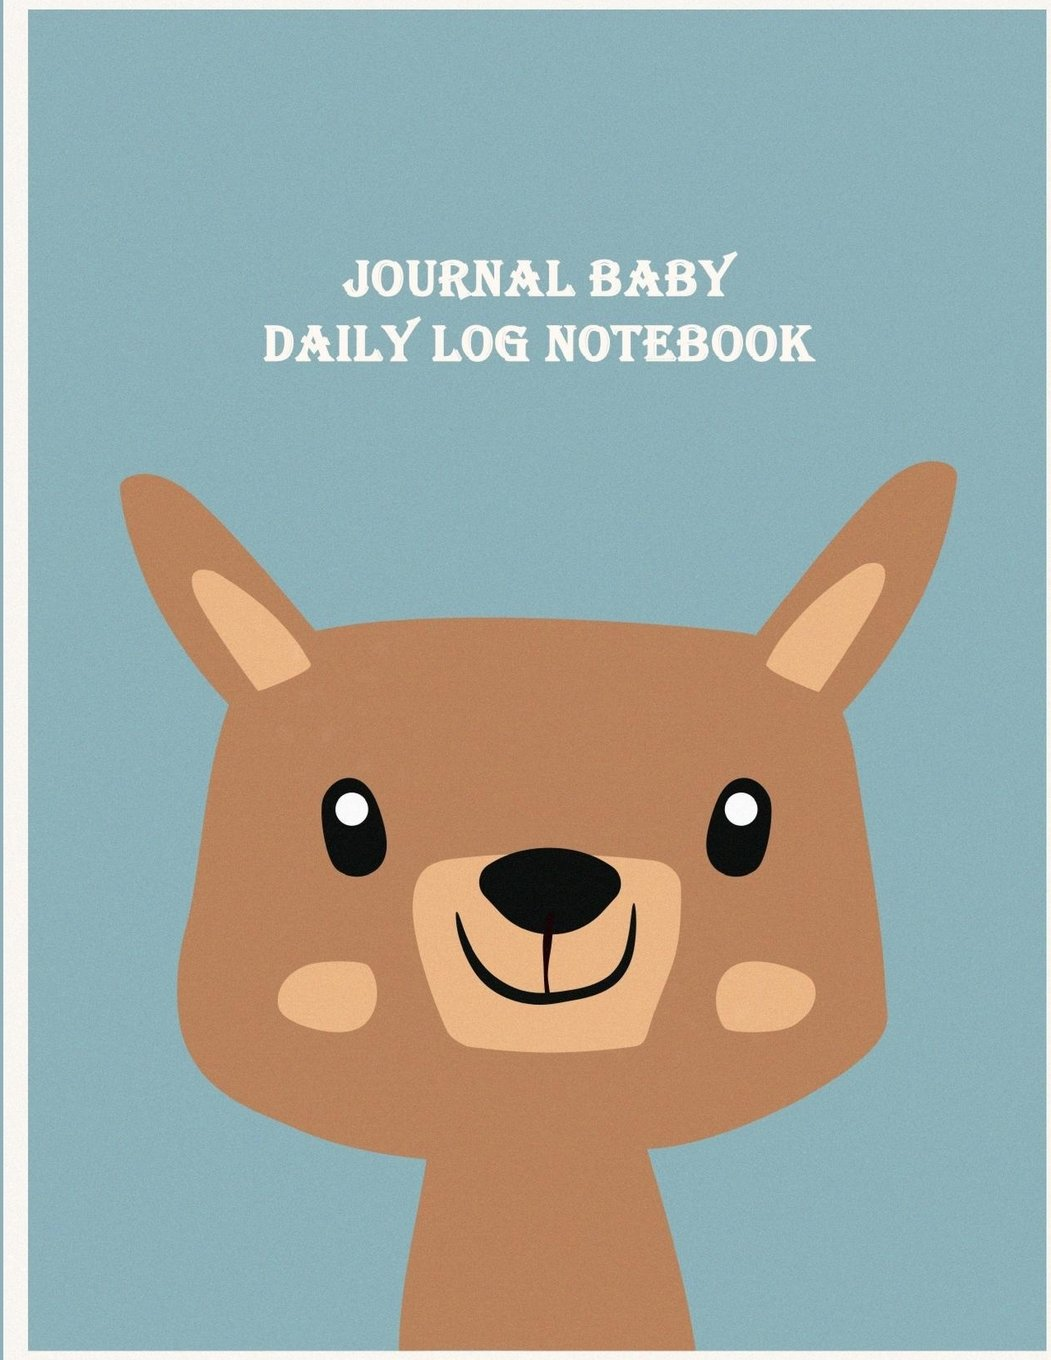 """Journal Baby Daily Log Notebook: Breastfeeding Journal, Baby Newborn Diapers, Childcare Nanny Report Book, Eat, Sleep, Poop Schedule, Child's Health ... Notebook, Meal Recorder, 120 pages 8.5"""" x 11"""" pdf epub"""